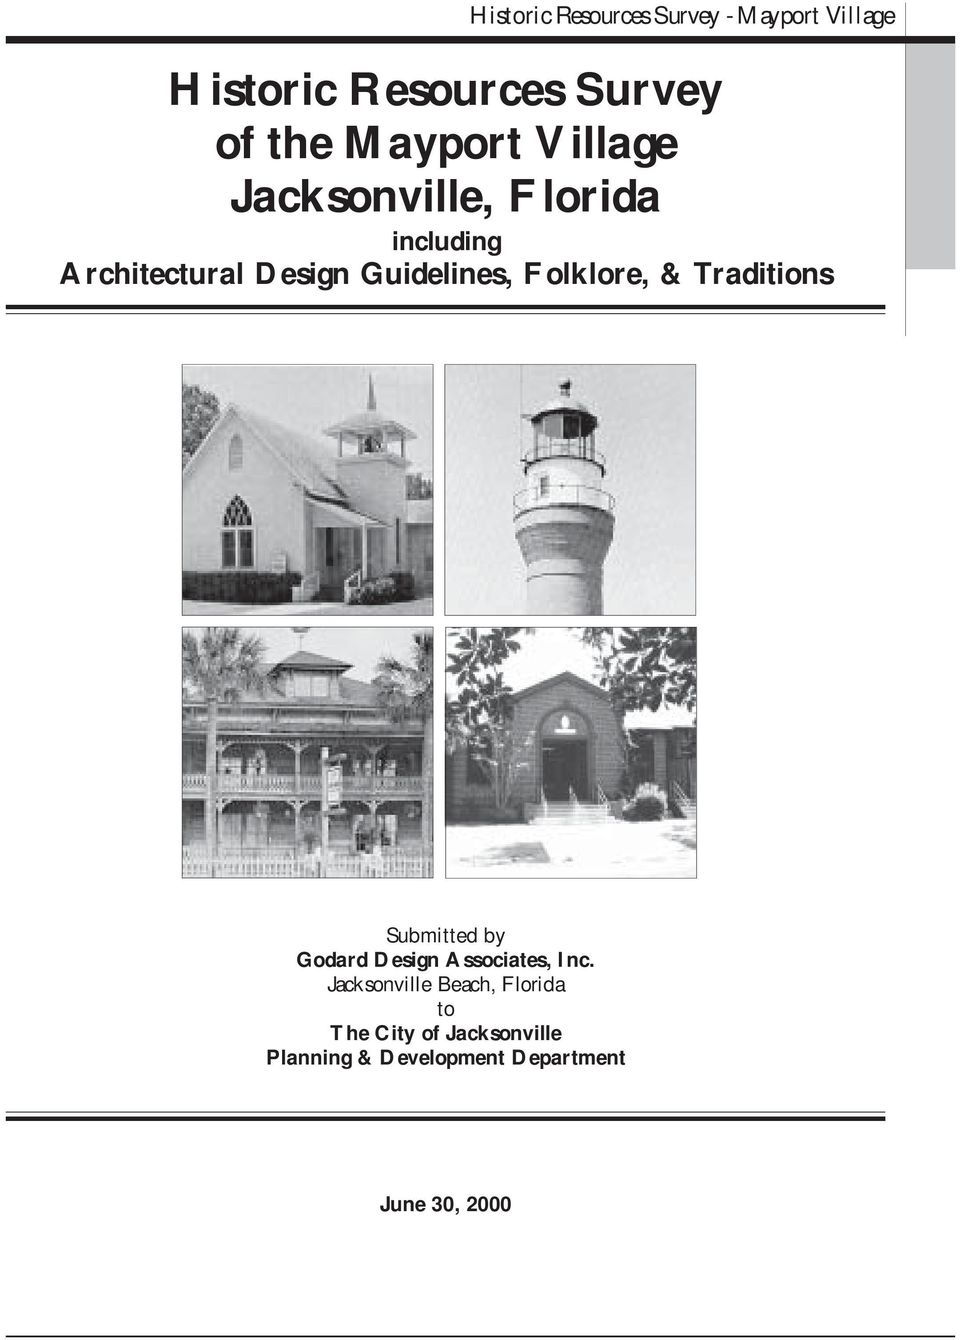 Folklore, & Traditions Submitted by Godard Design Associates, Inc.